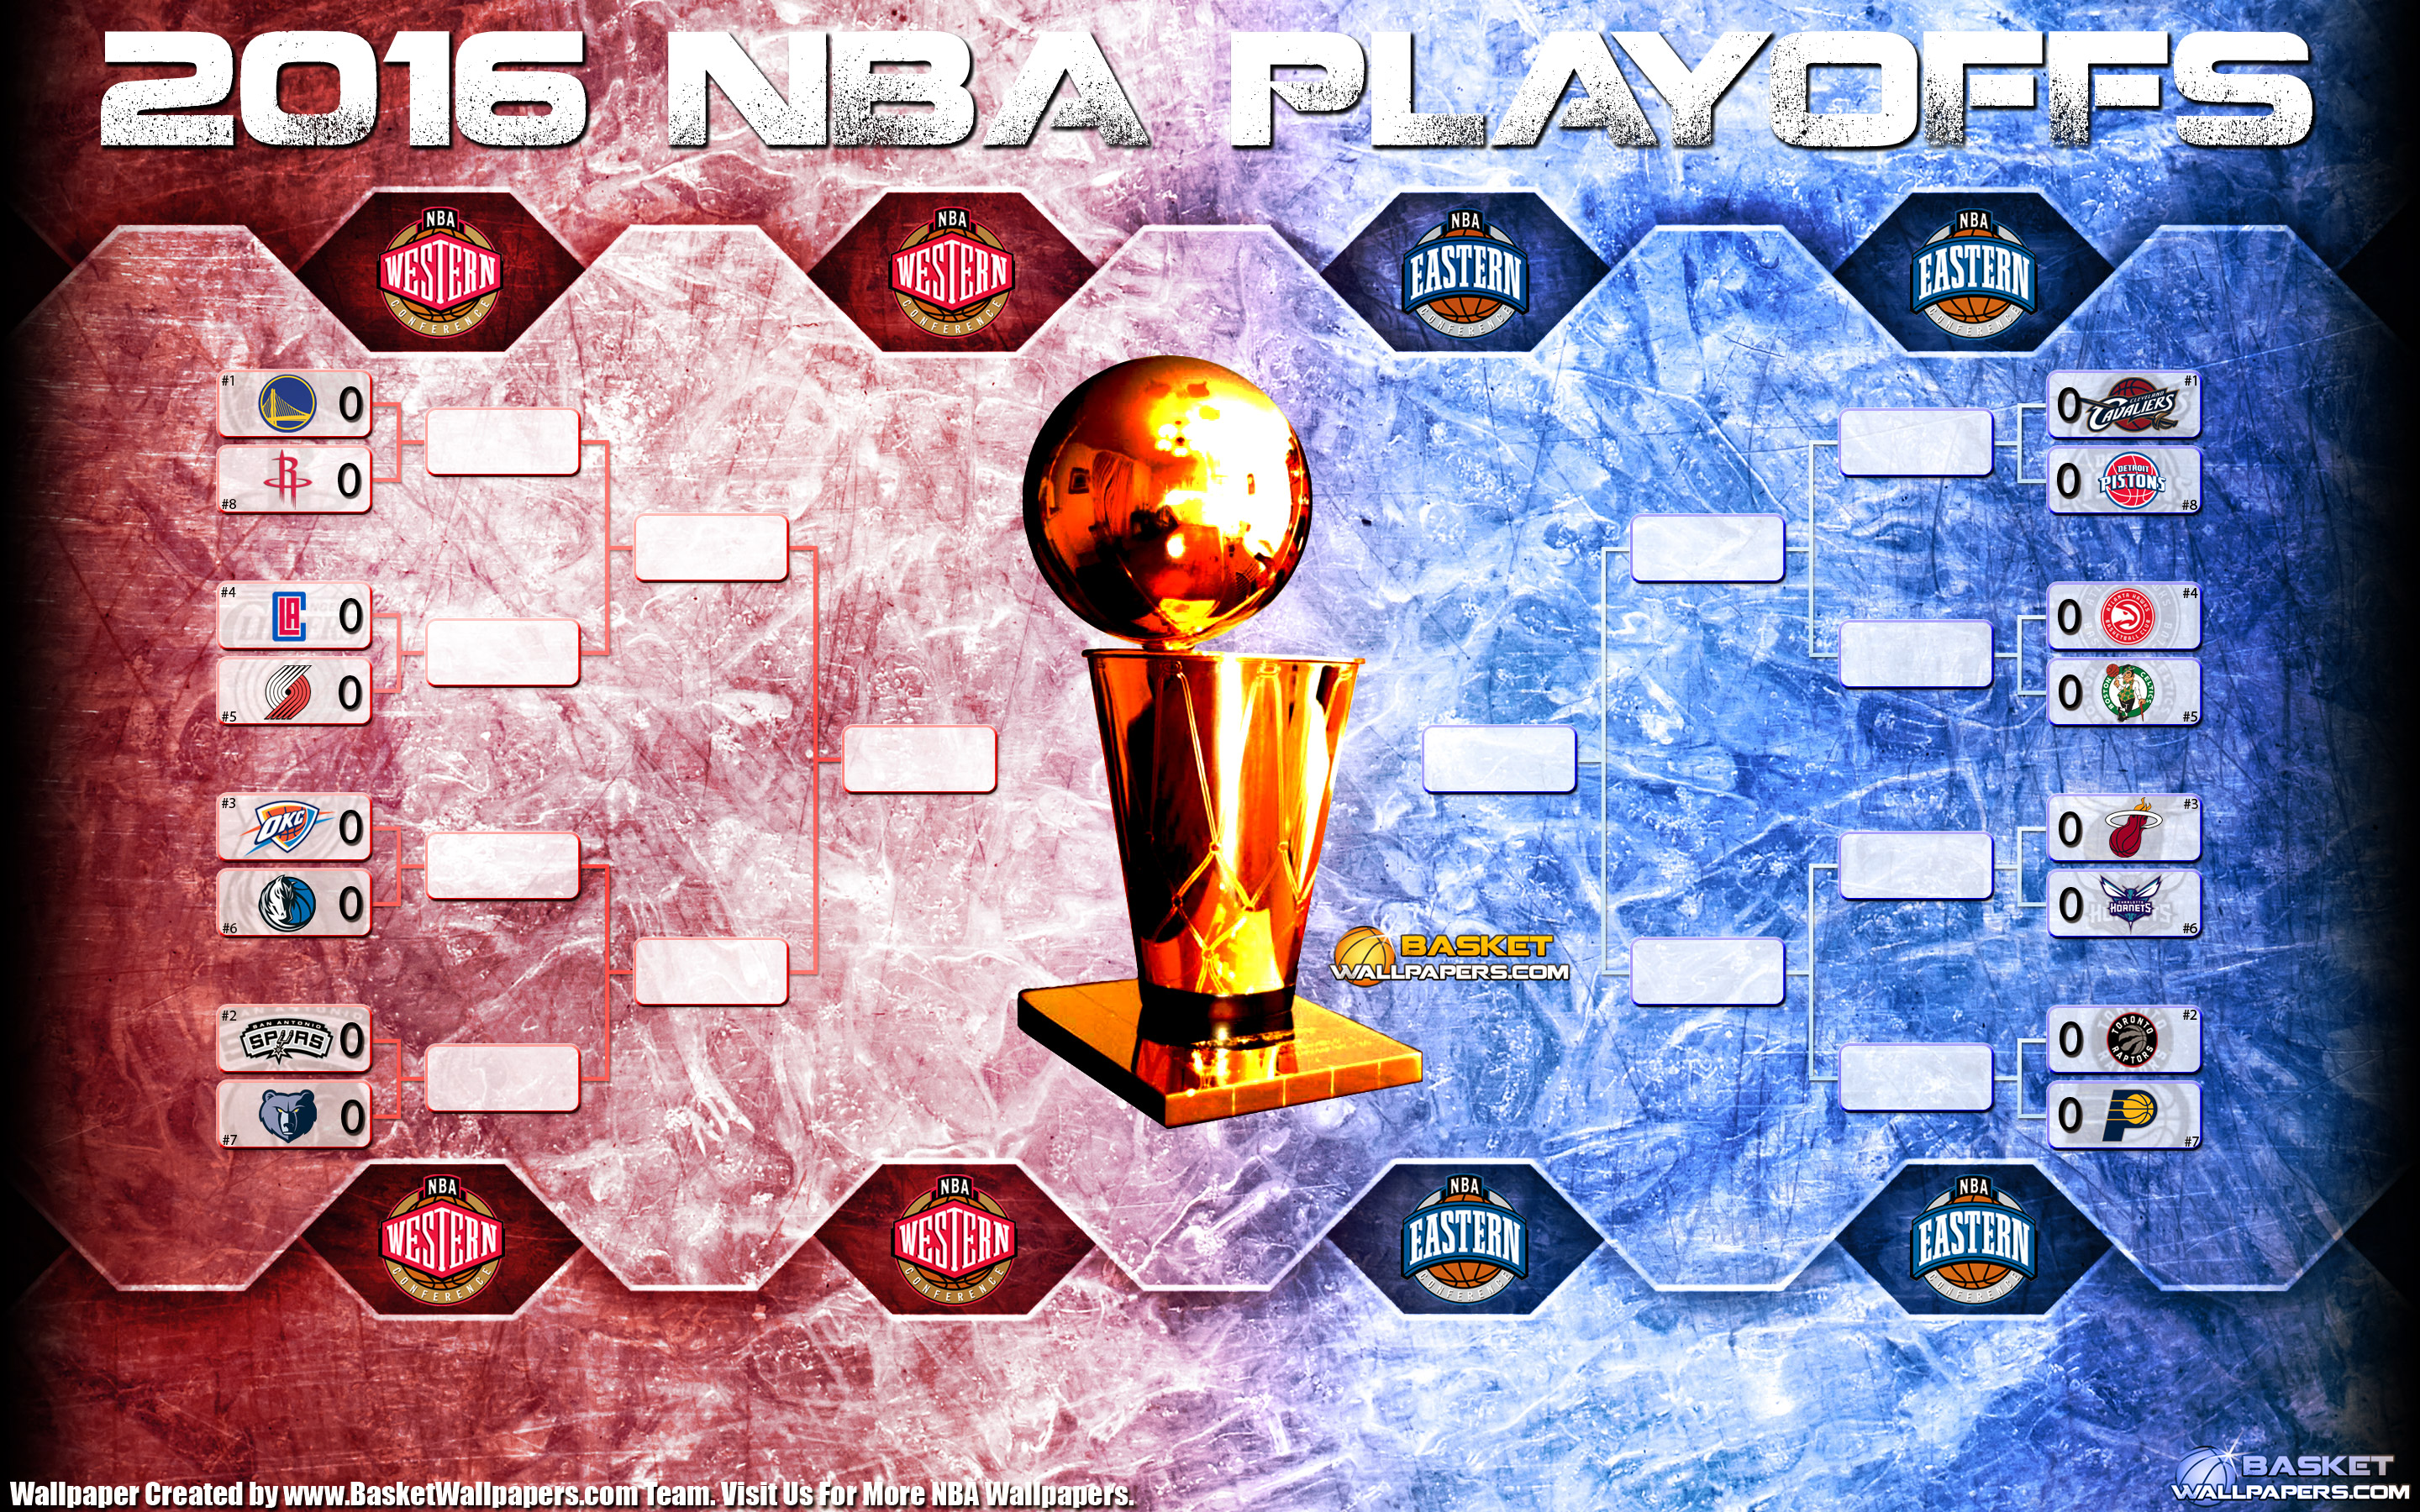 2016 NBA Playoffs Bracket 2880x1800 Wallpaper